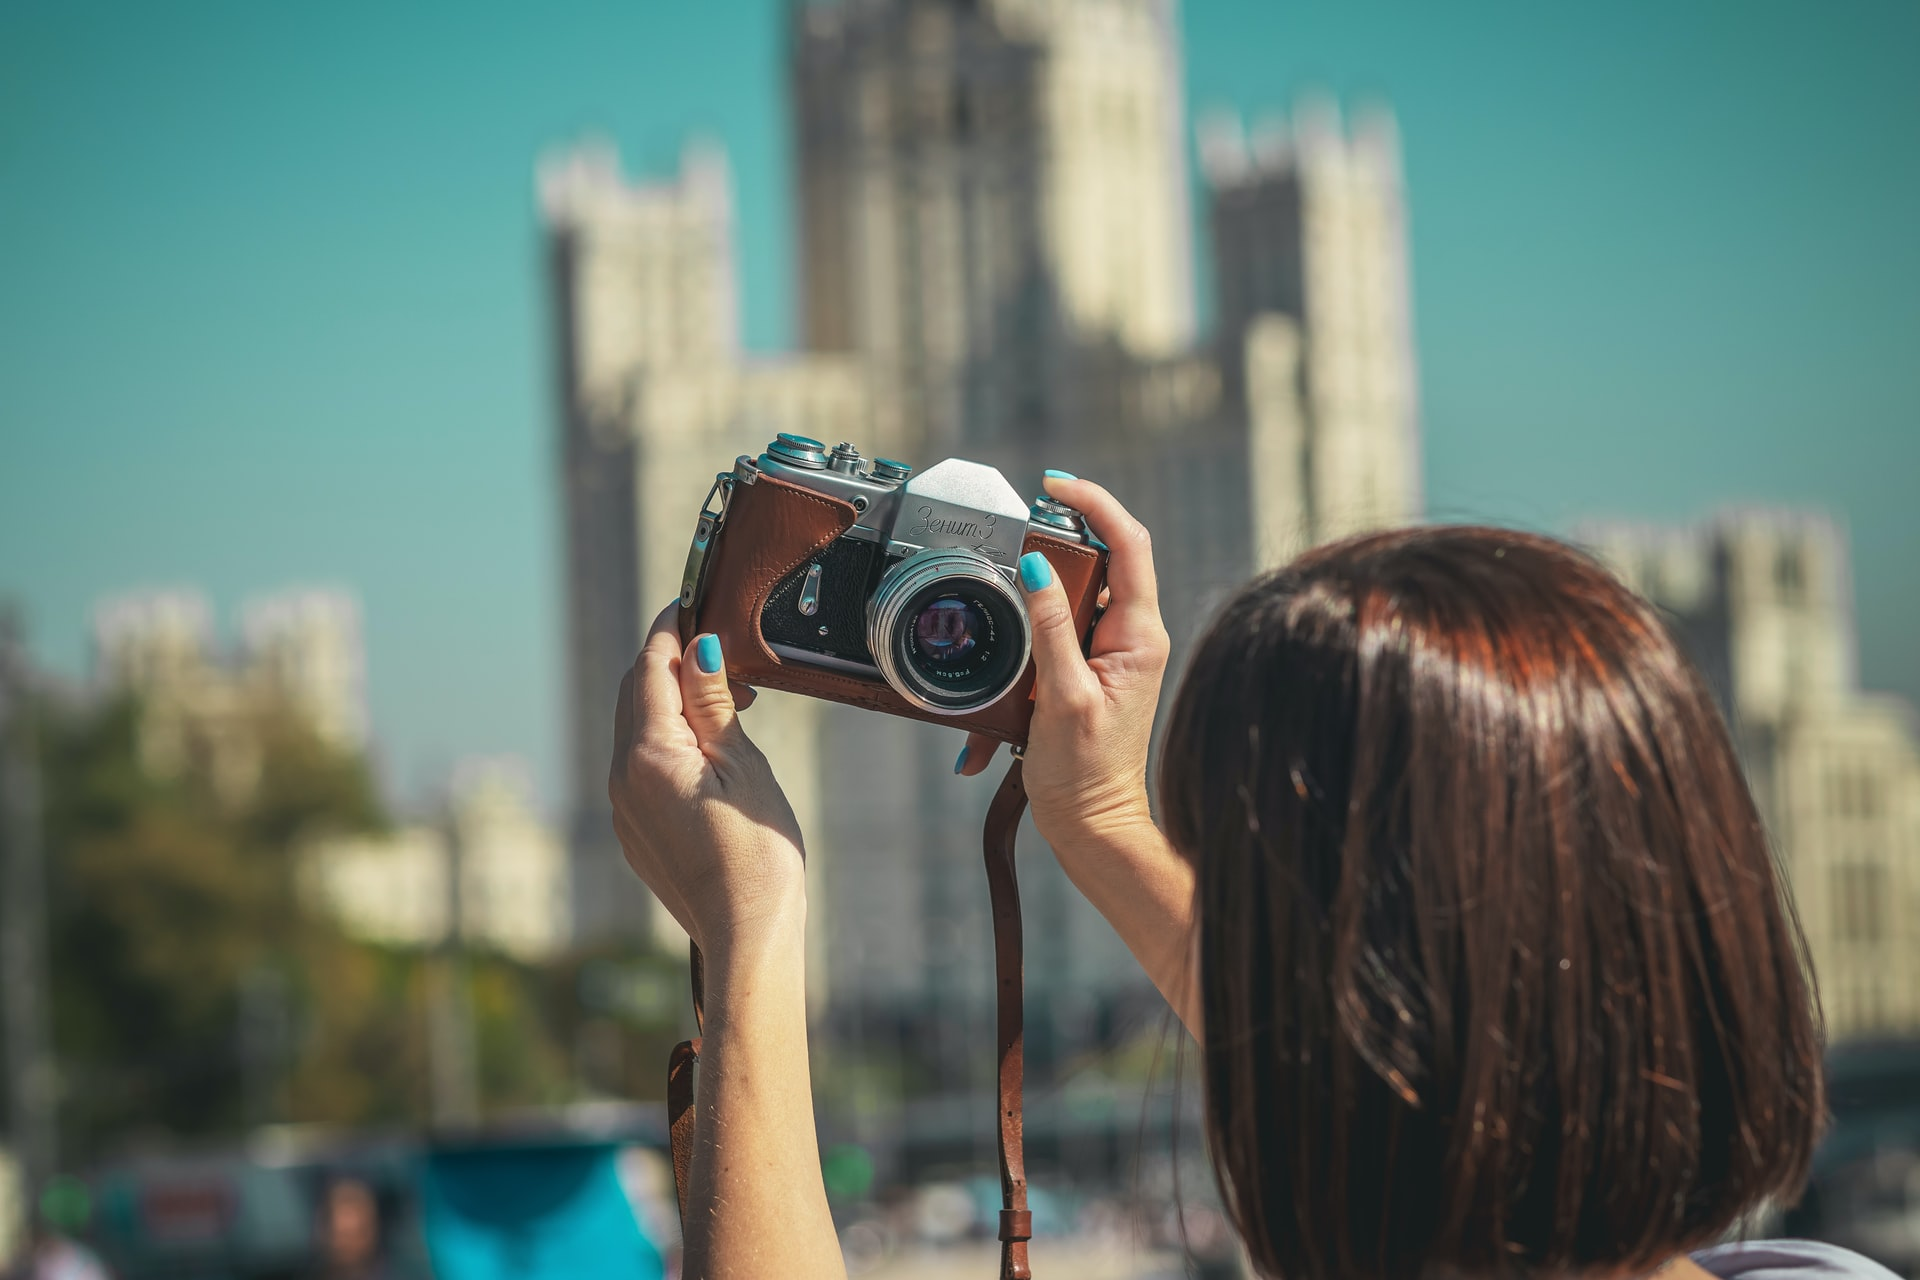 How to get over the fear of being camera shy